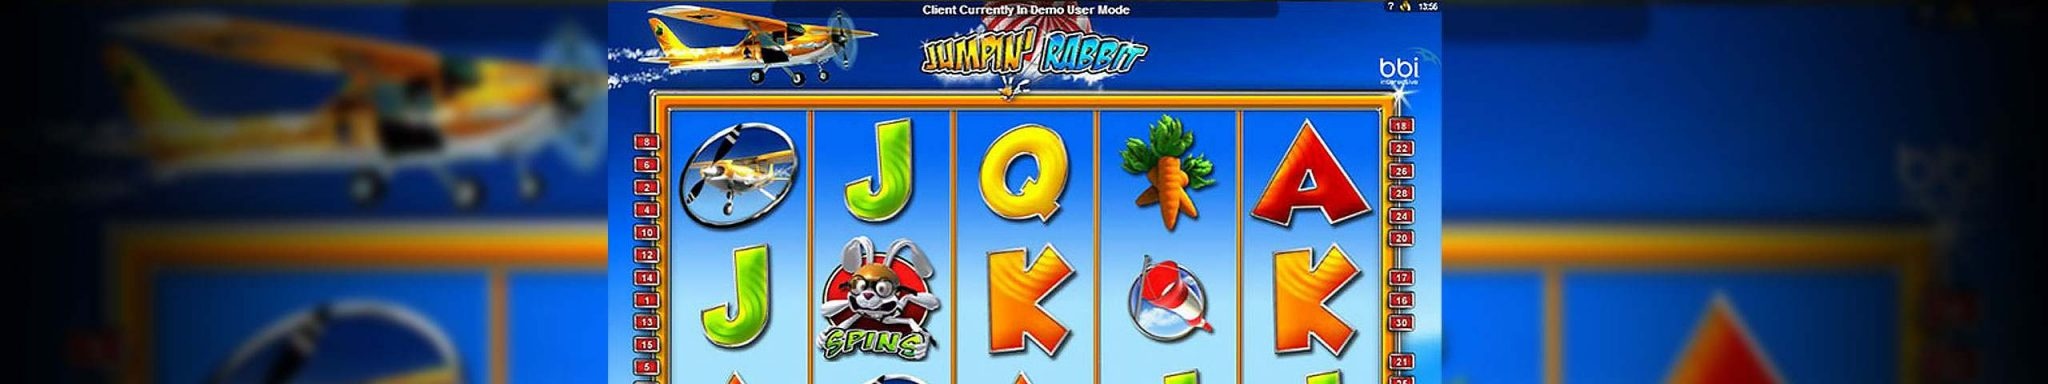 Jumpin Rabbit microgaming spilleautomater slider